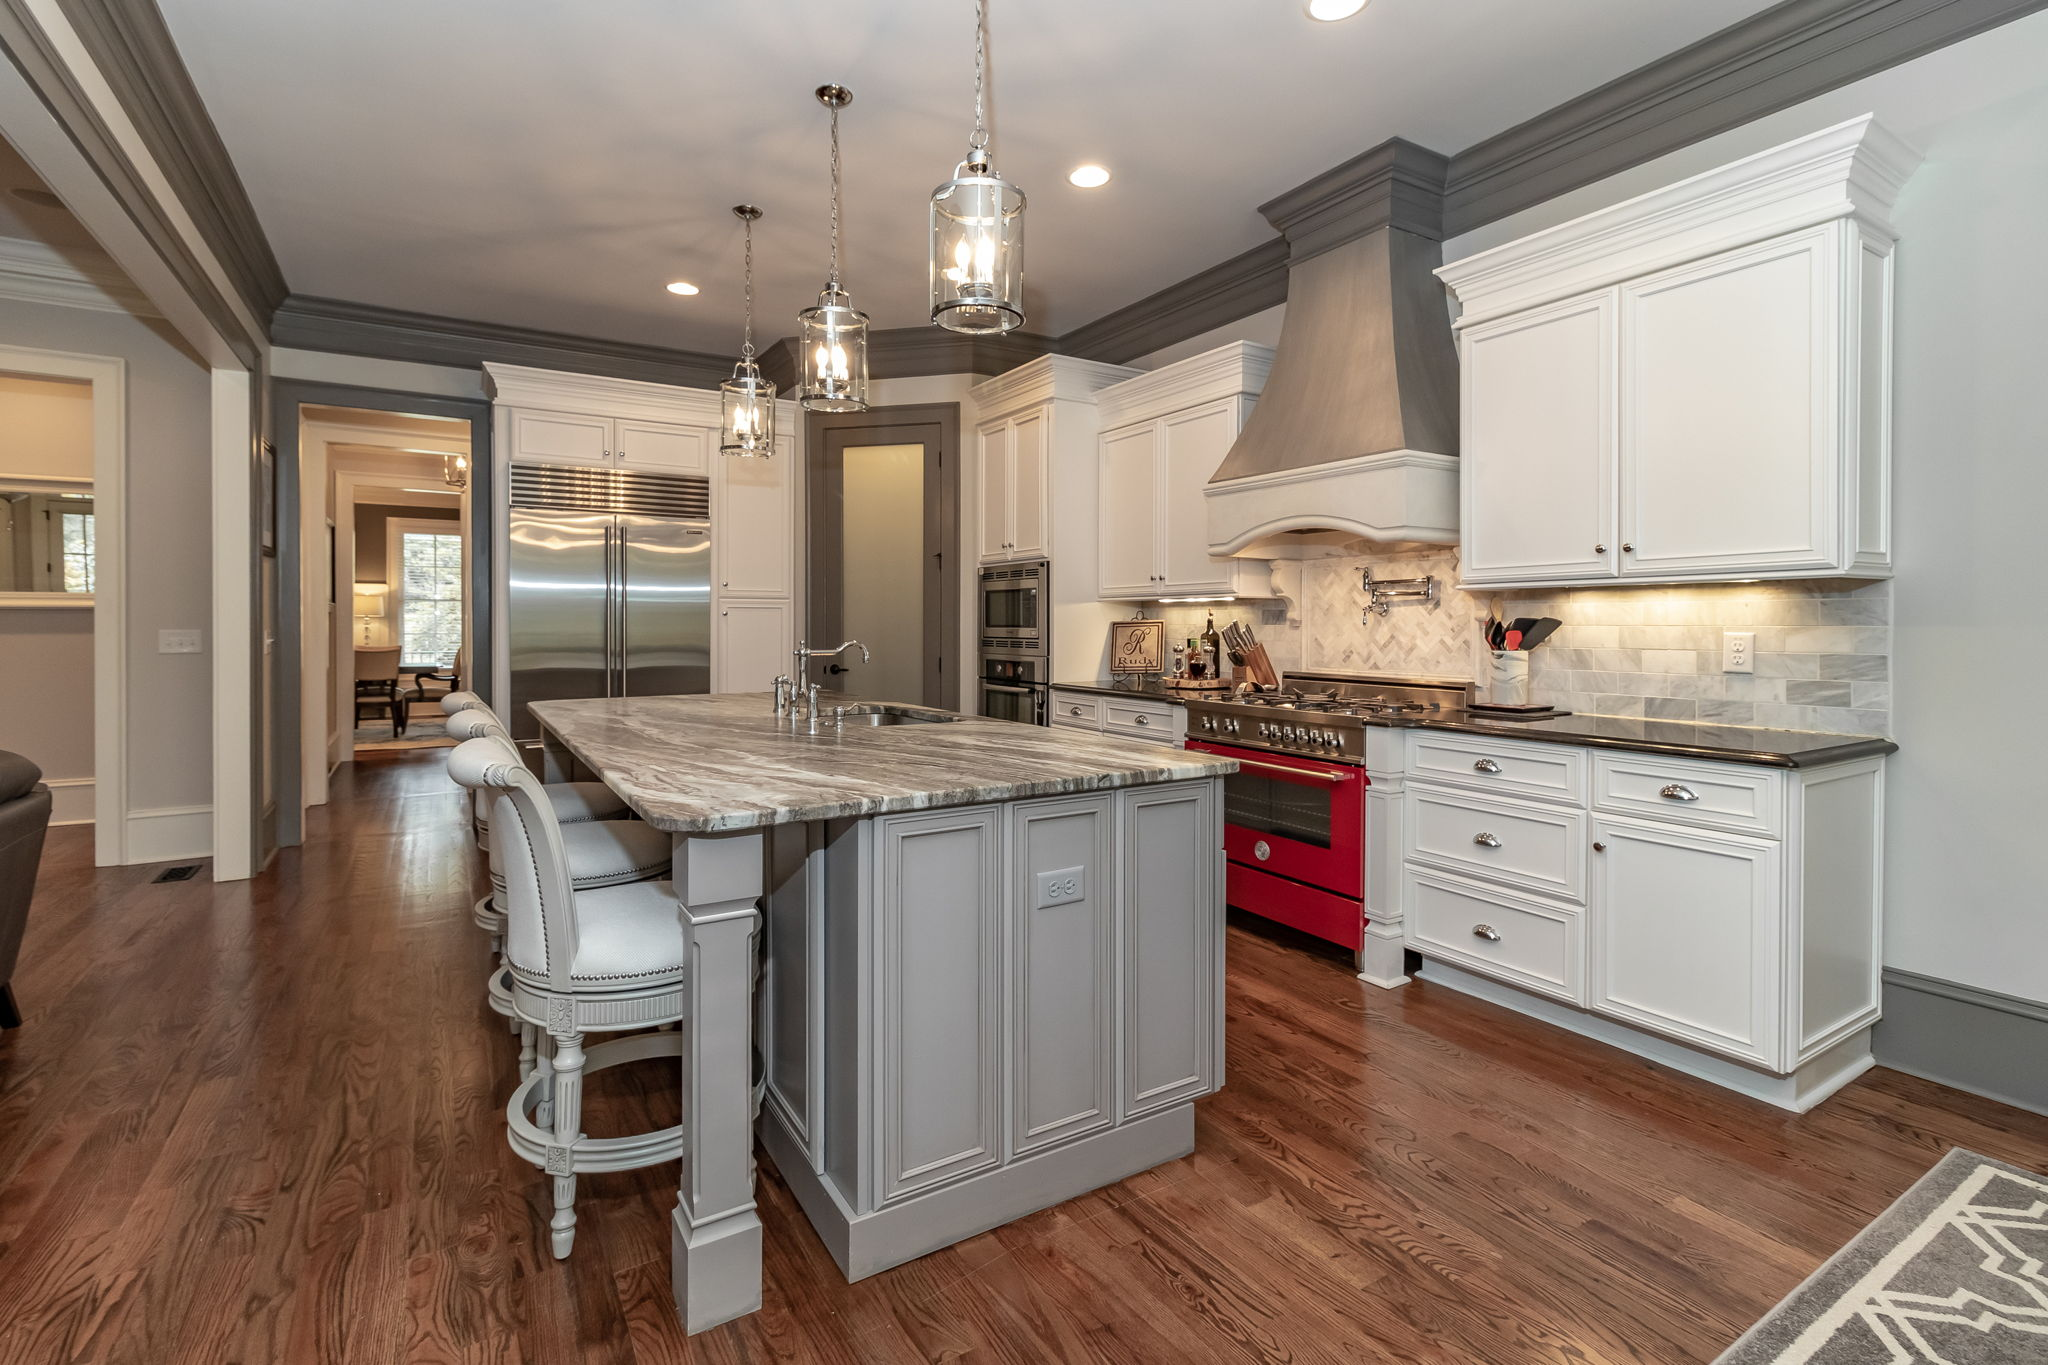 Kitchen - Island With Seating